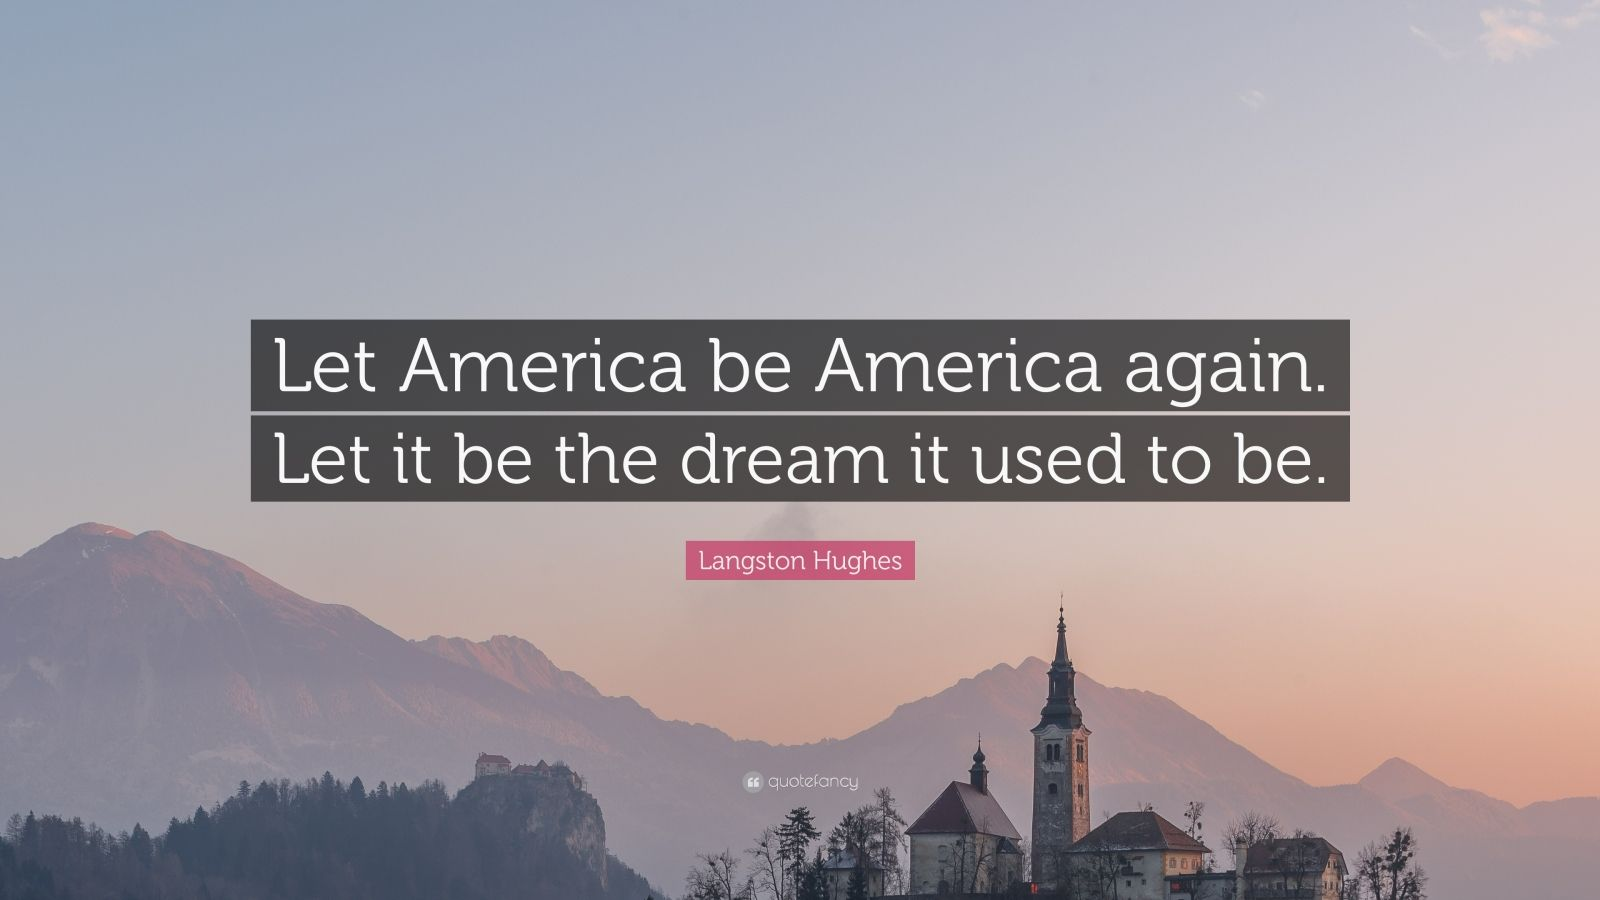 Let America Be America Again - Poem by Langston Hughes